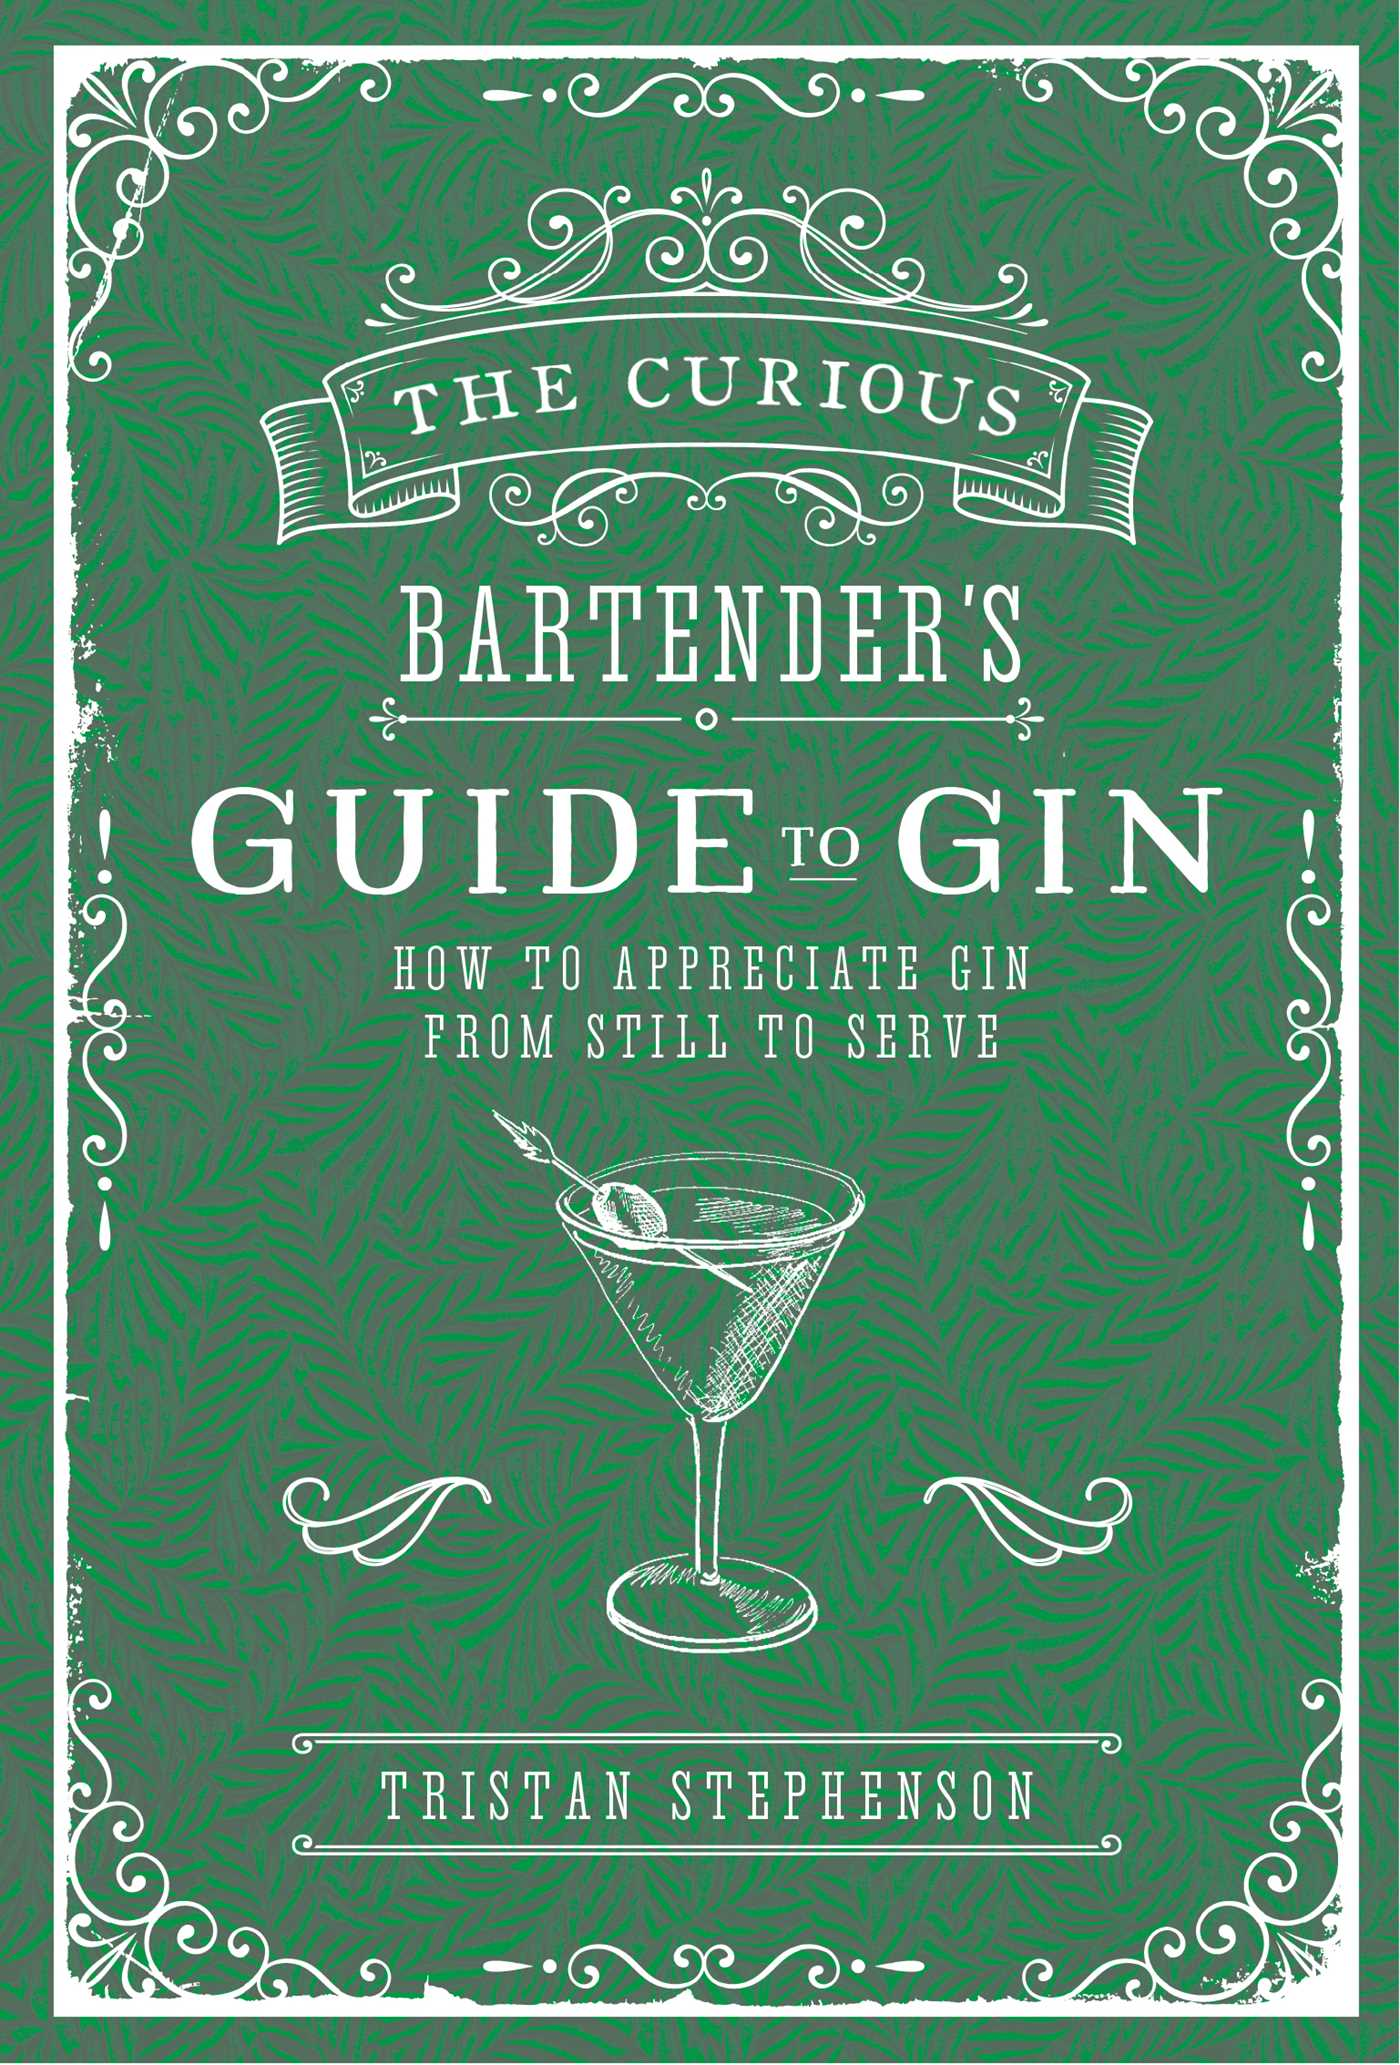 The curious bartenders guide to gin 9781788790390 hr